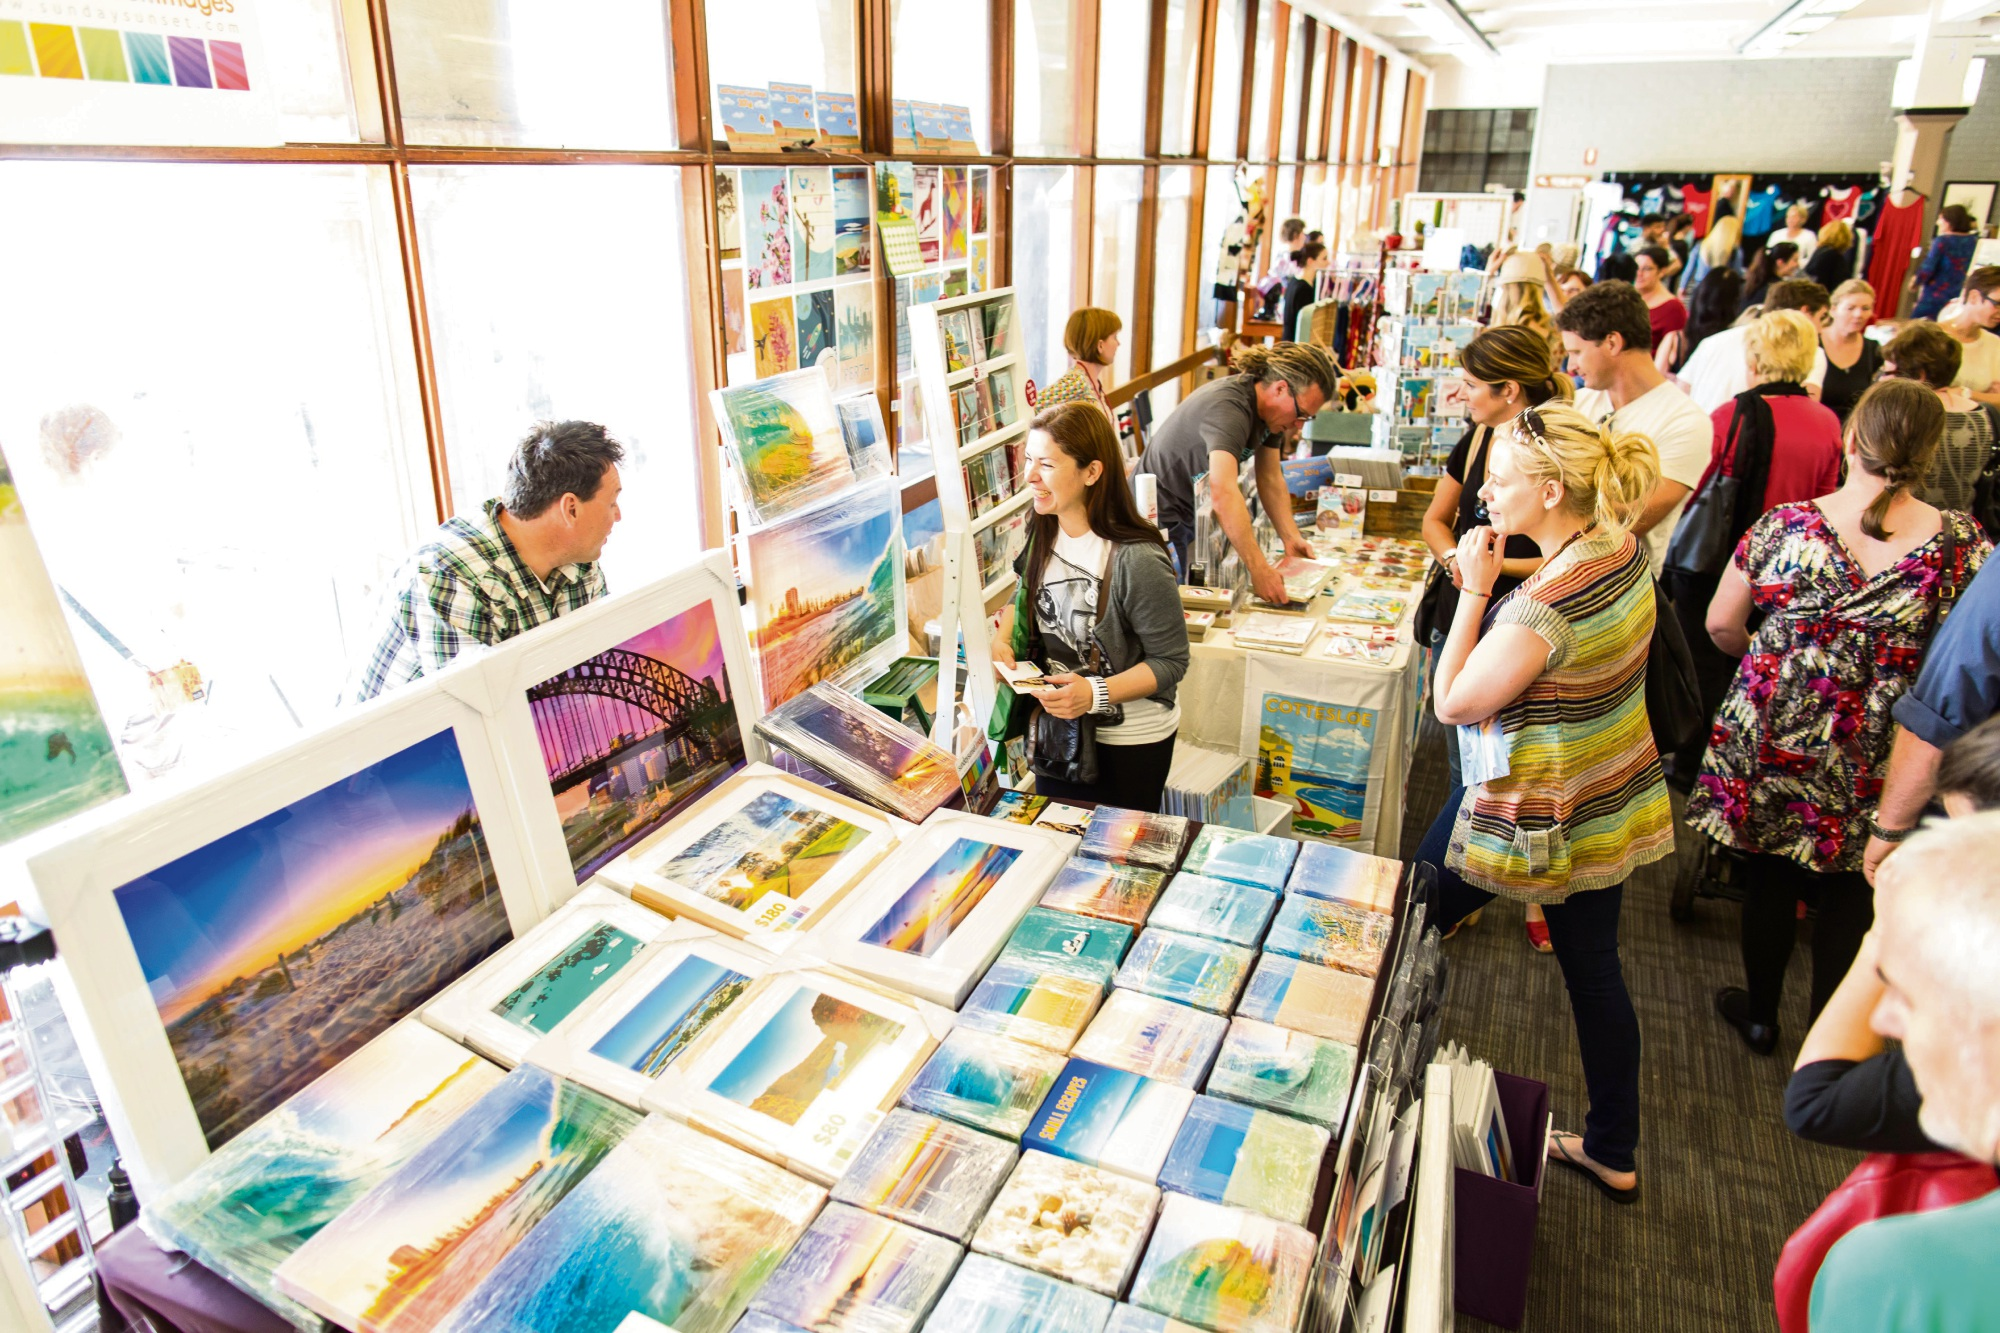 Gourmet food, gifts, clothing: Perth Upmarket truly has it all